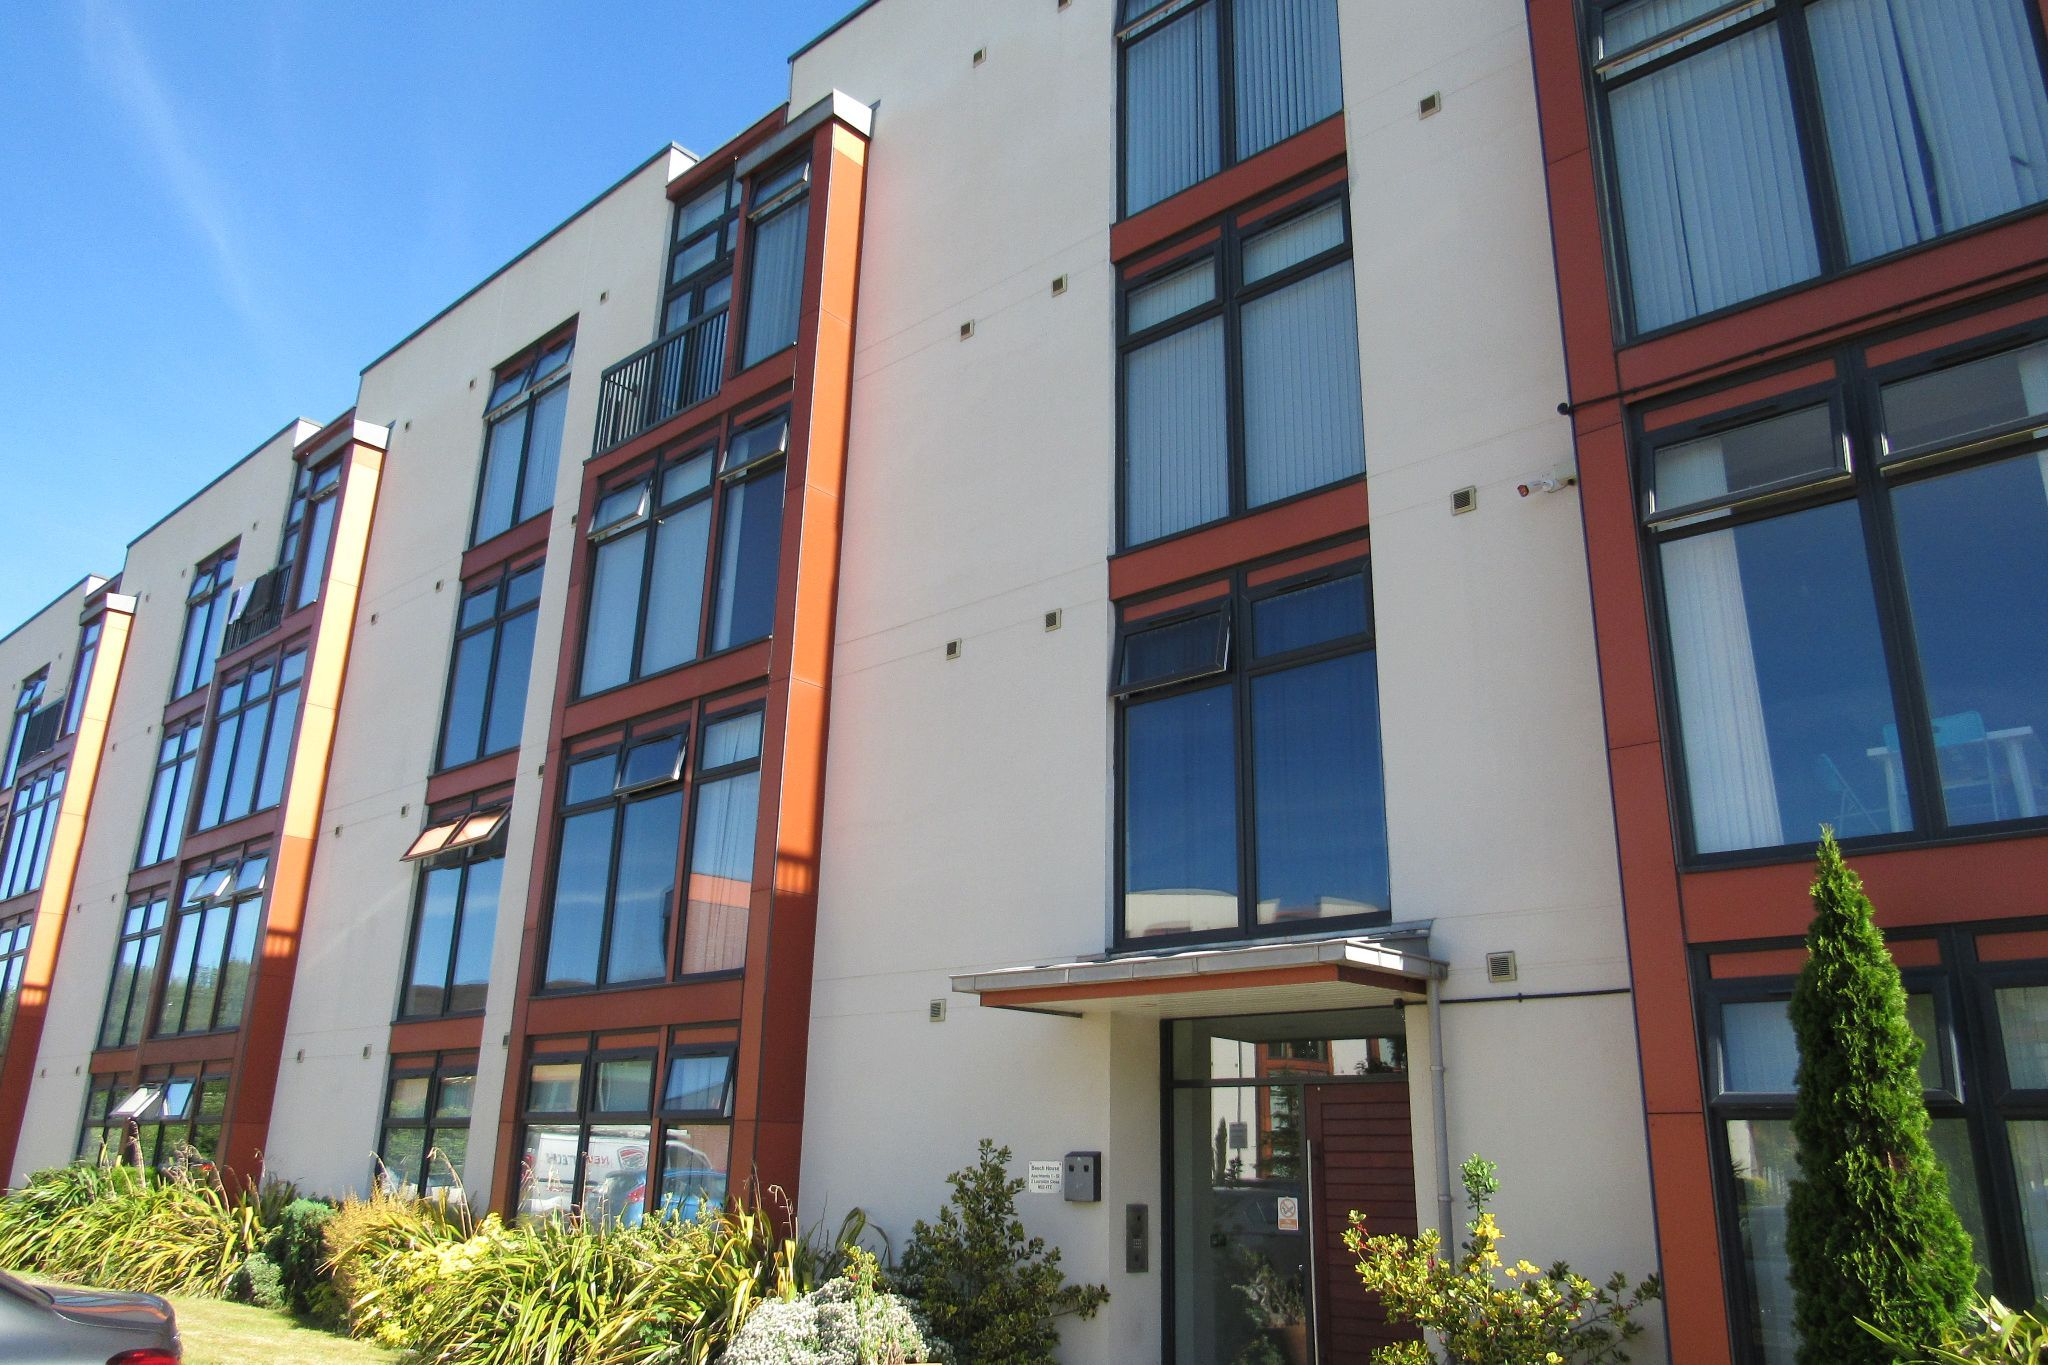 2 bedroom apartment flat/apartment Sale Agreed in Manchester - Photograph 1.